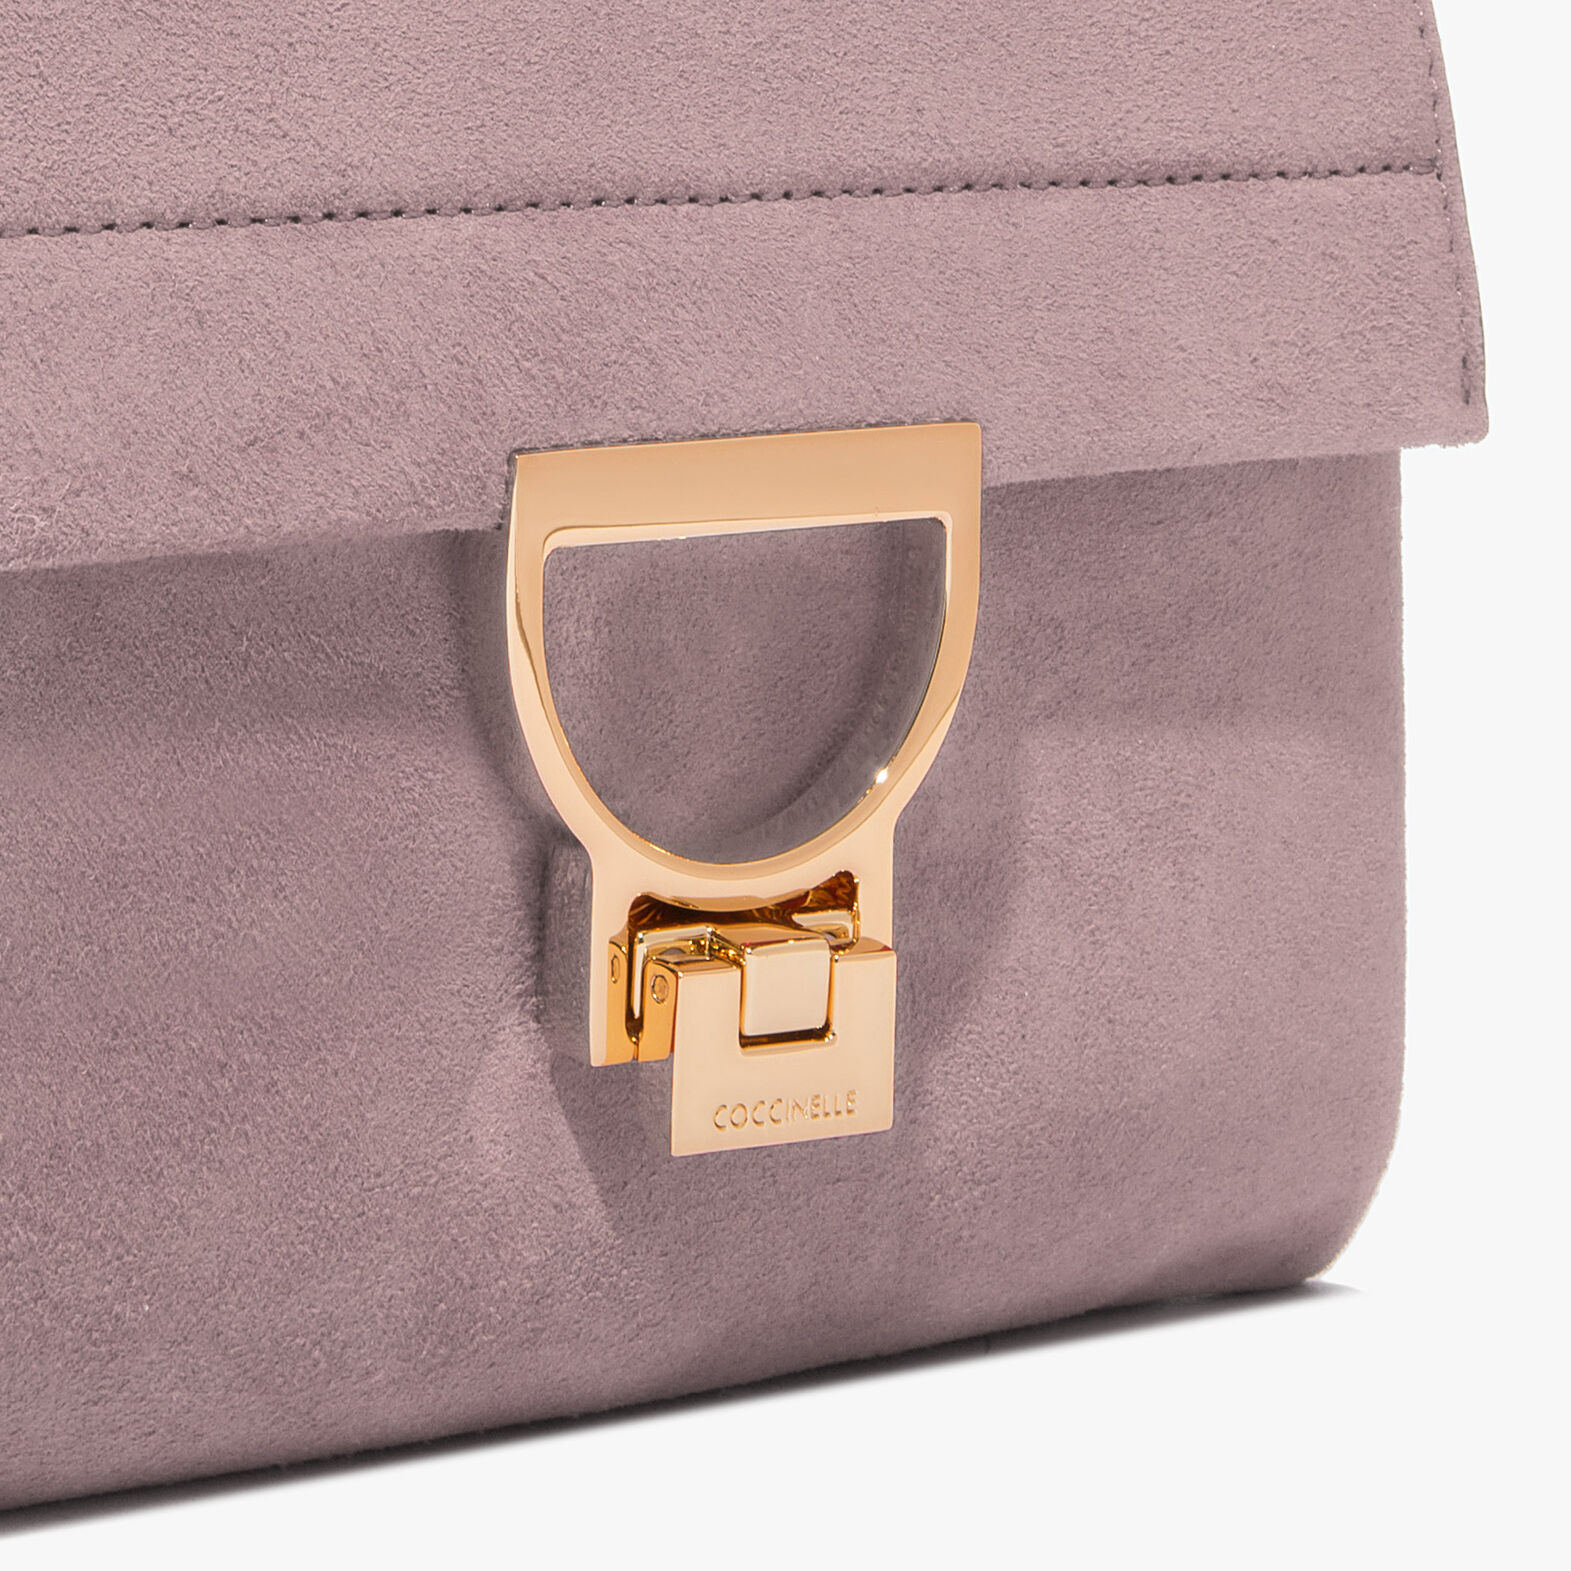 Suede leather bag